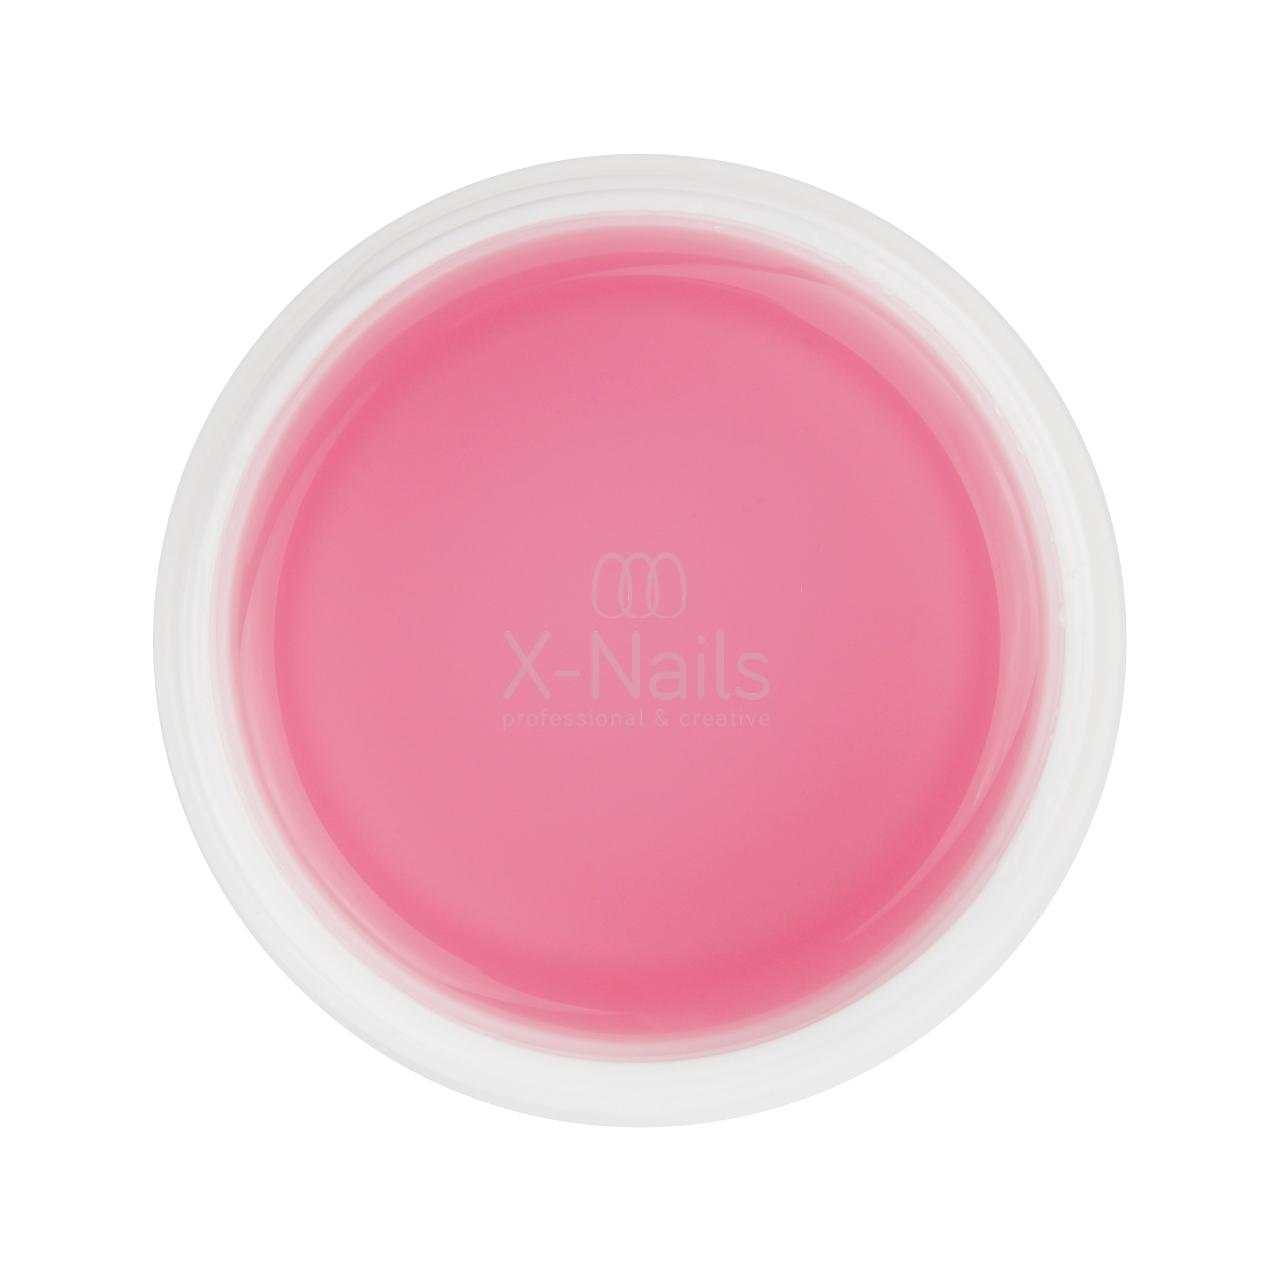 X-NAILS UV Classic Line AKRYGEL, 50 ml - PINK CLEAR